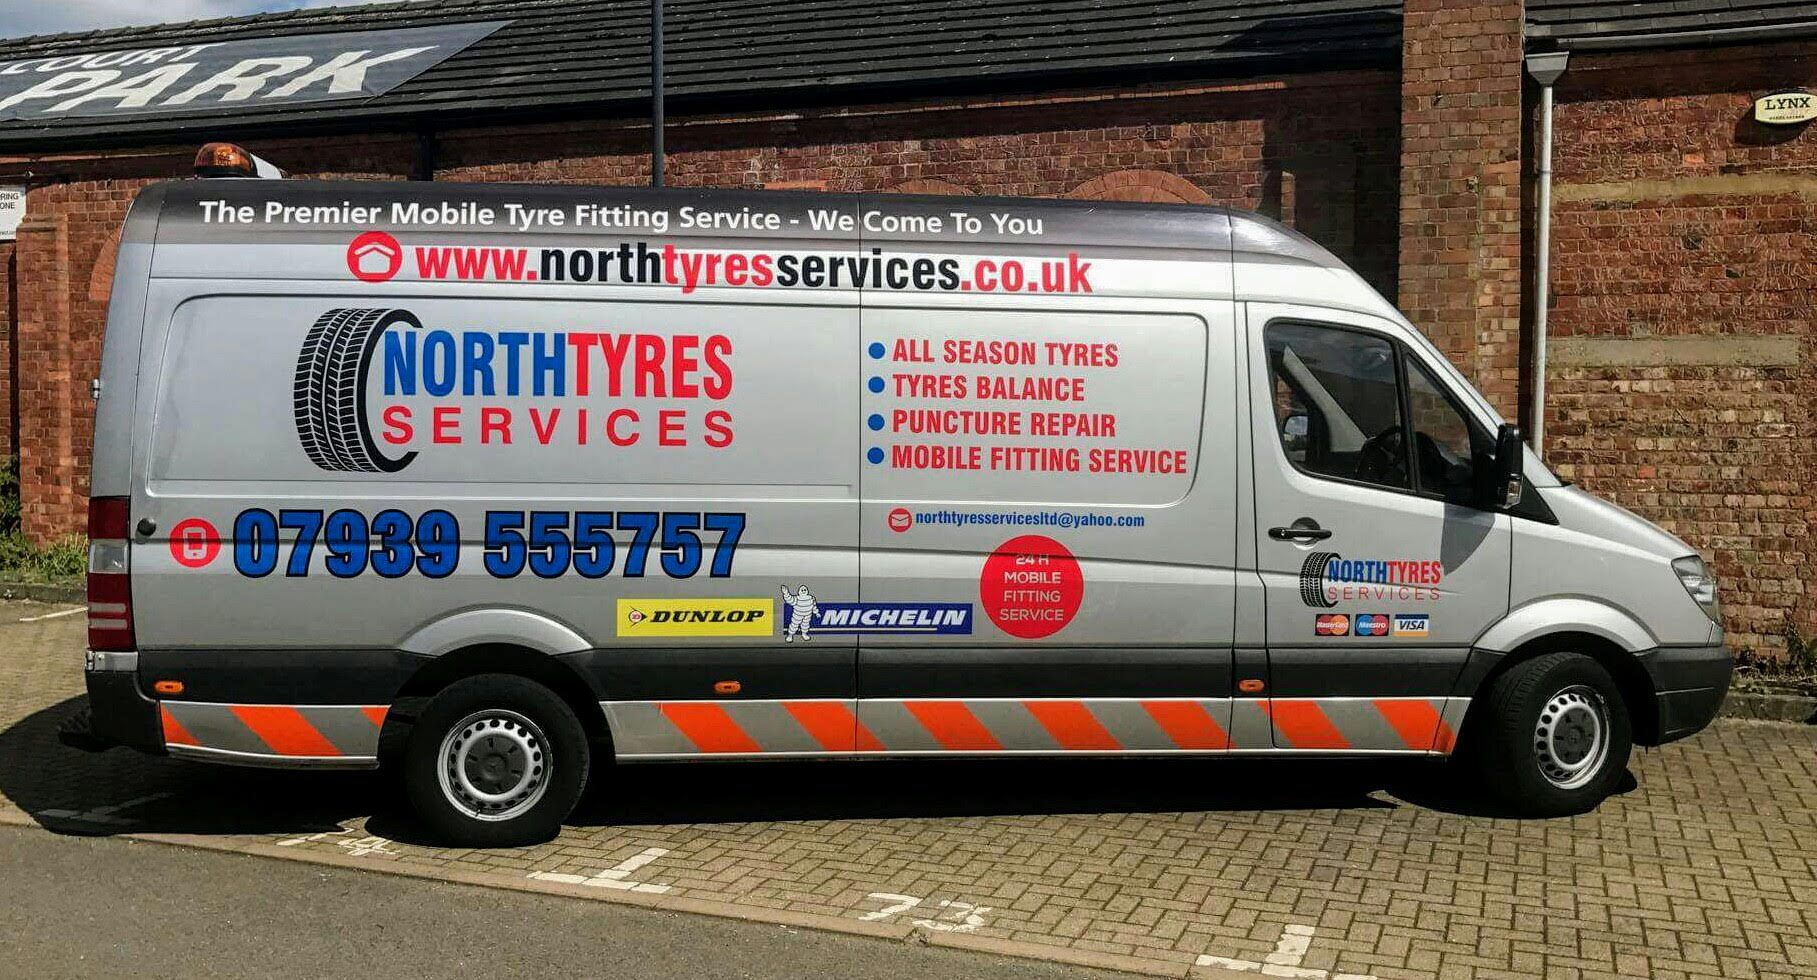 Nort tyres service services